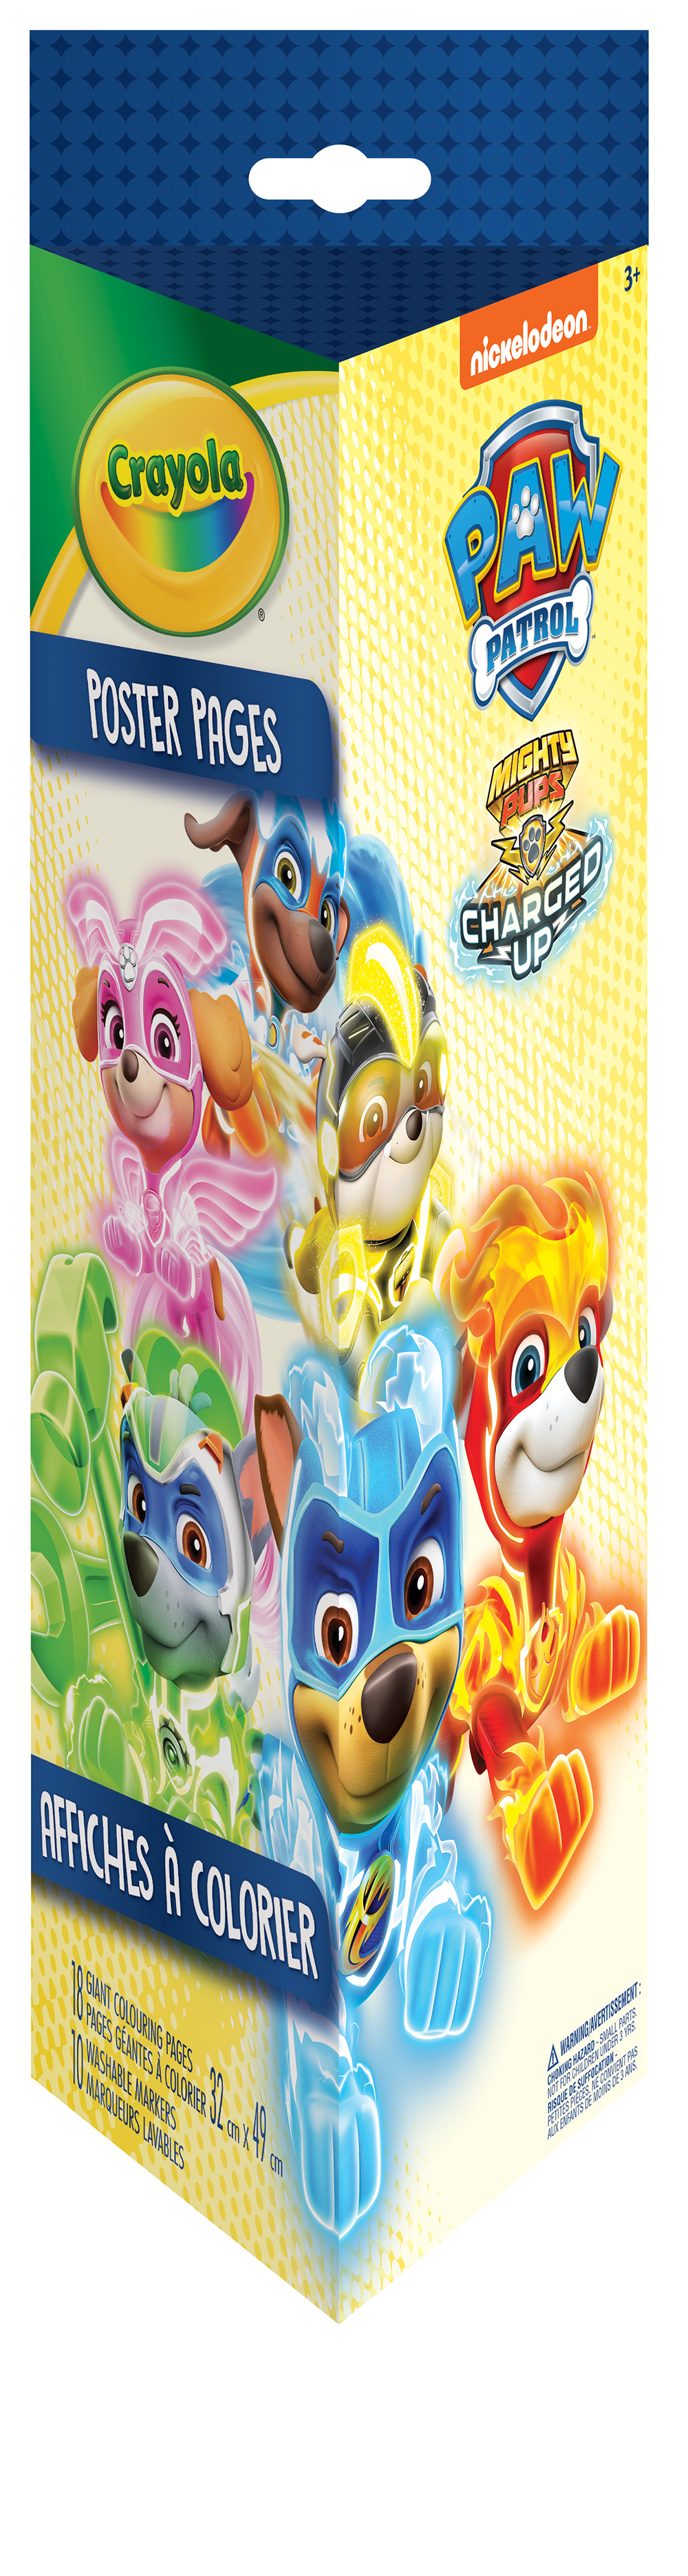 CRAYOLA -  POSTERS TO COLOR -  PAW PATROL